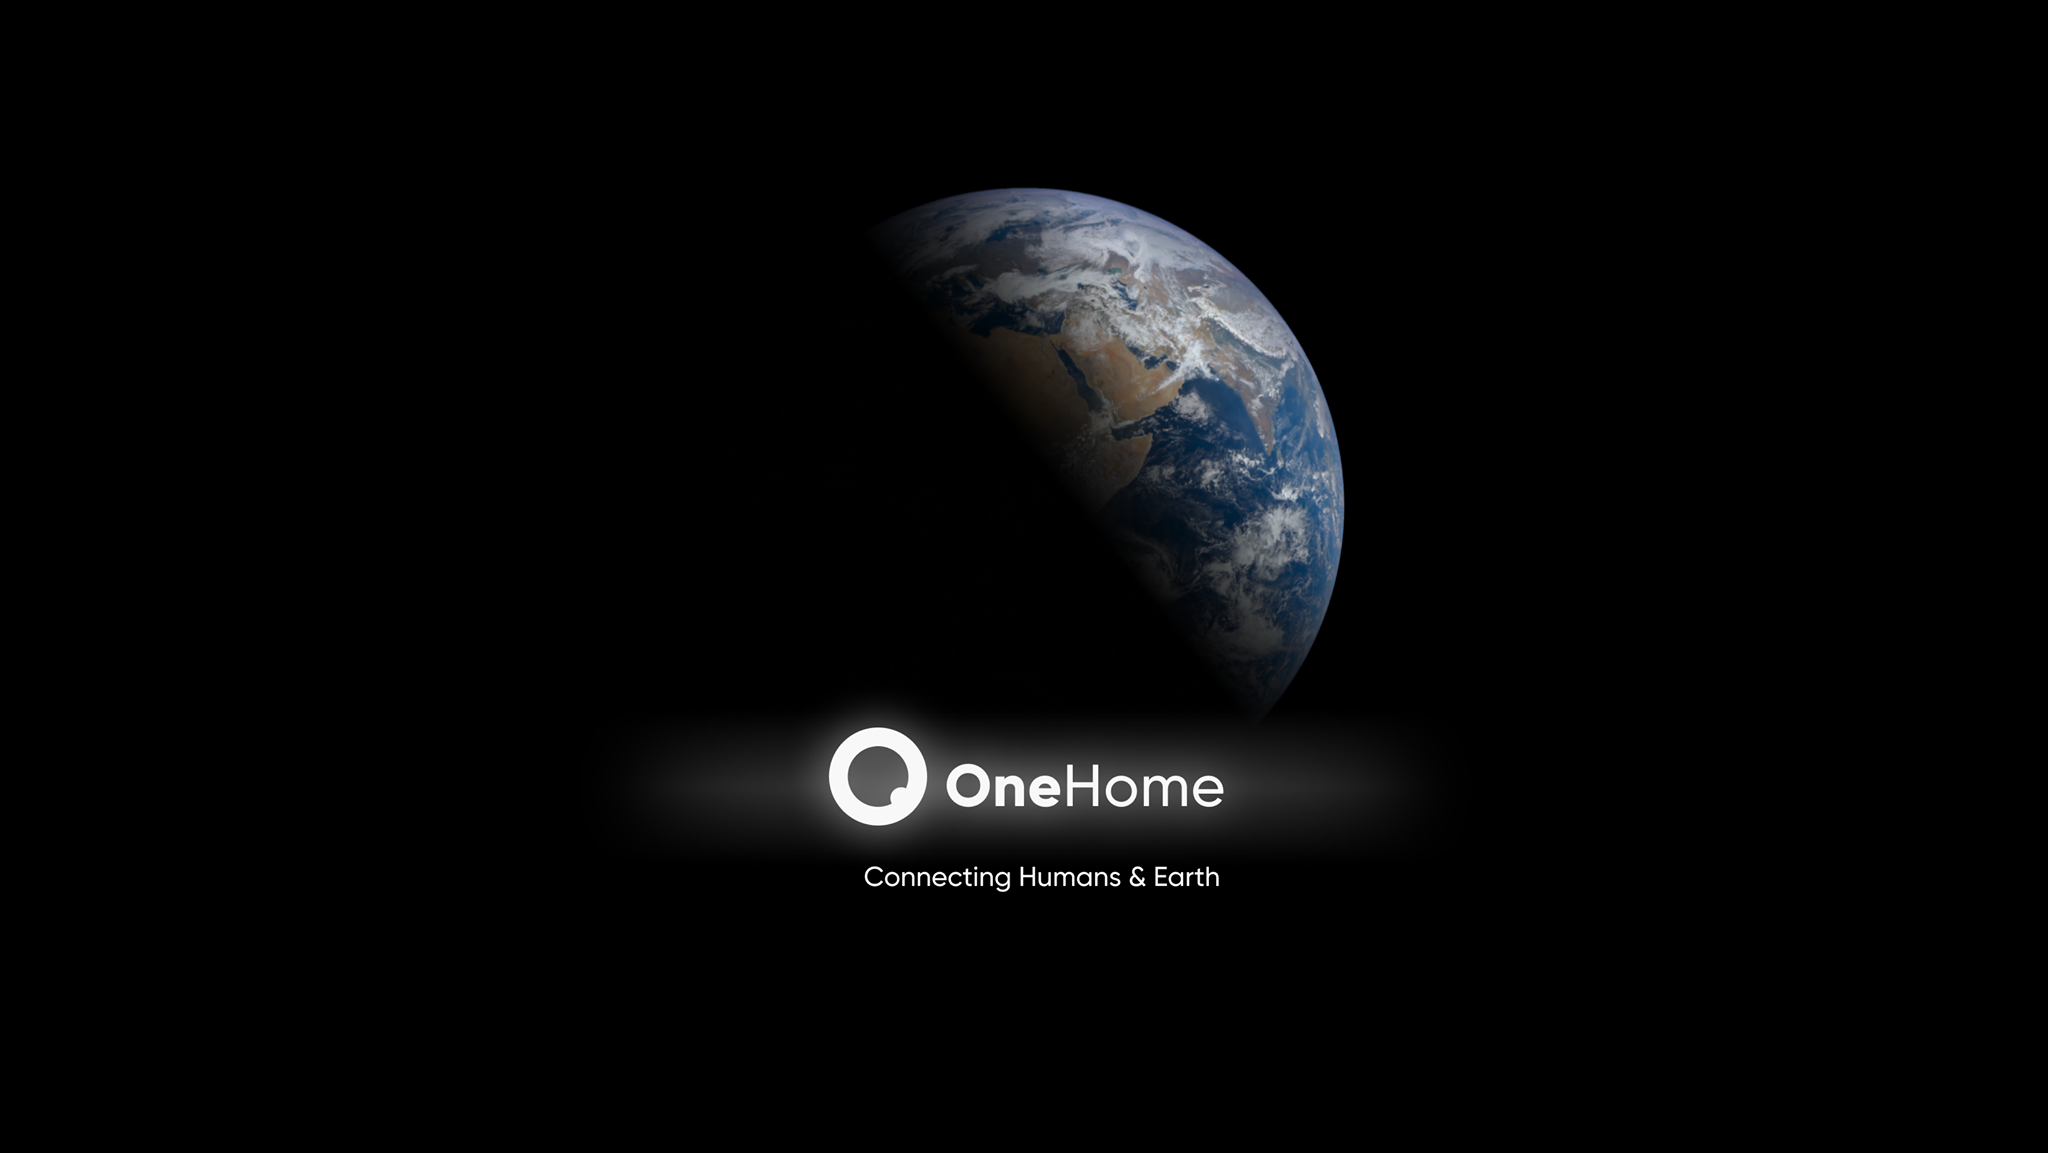 OneHome cover - The Earth doesn't need to be saved. She just needs to be loved.